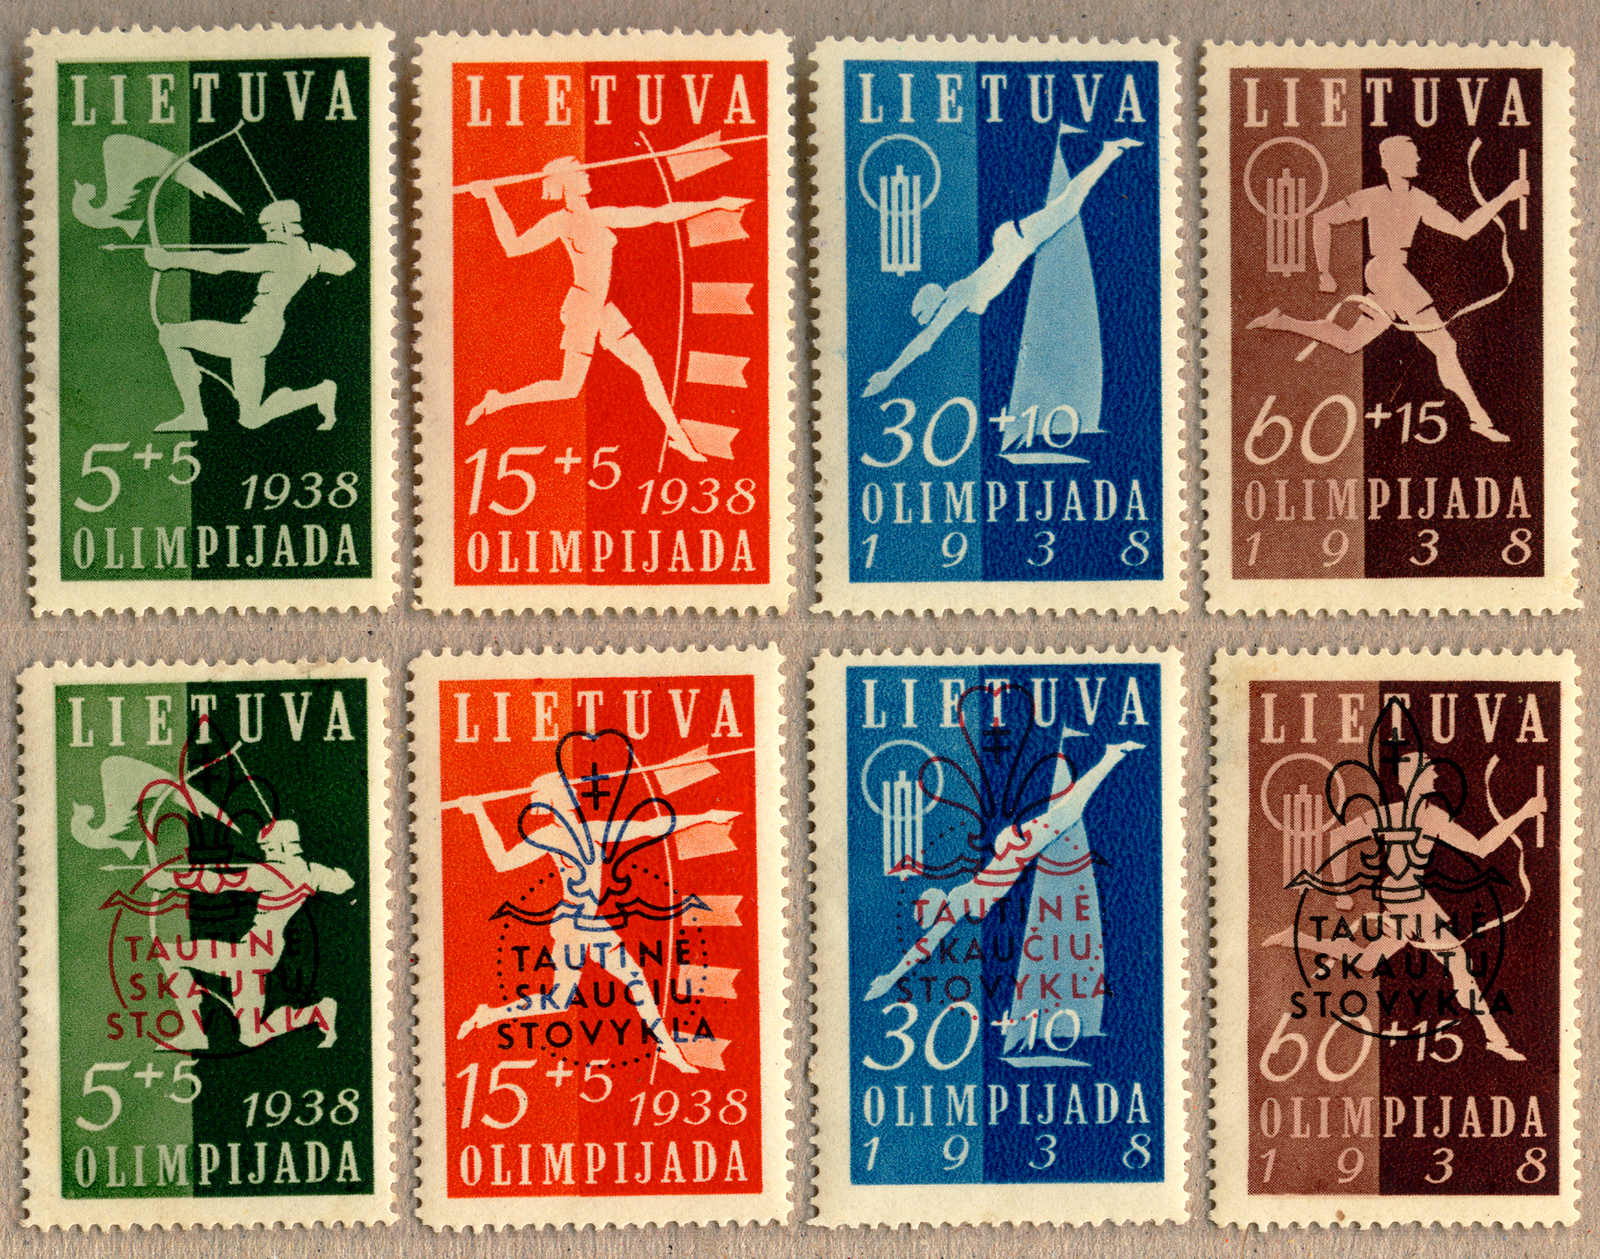 Lot 10012 - europe Lithuania -  classicphil GmbH 3 rd classicphil Auction - VIENNA- AUSTRIA